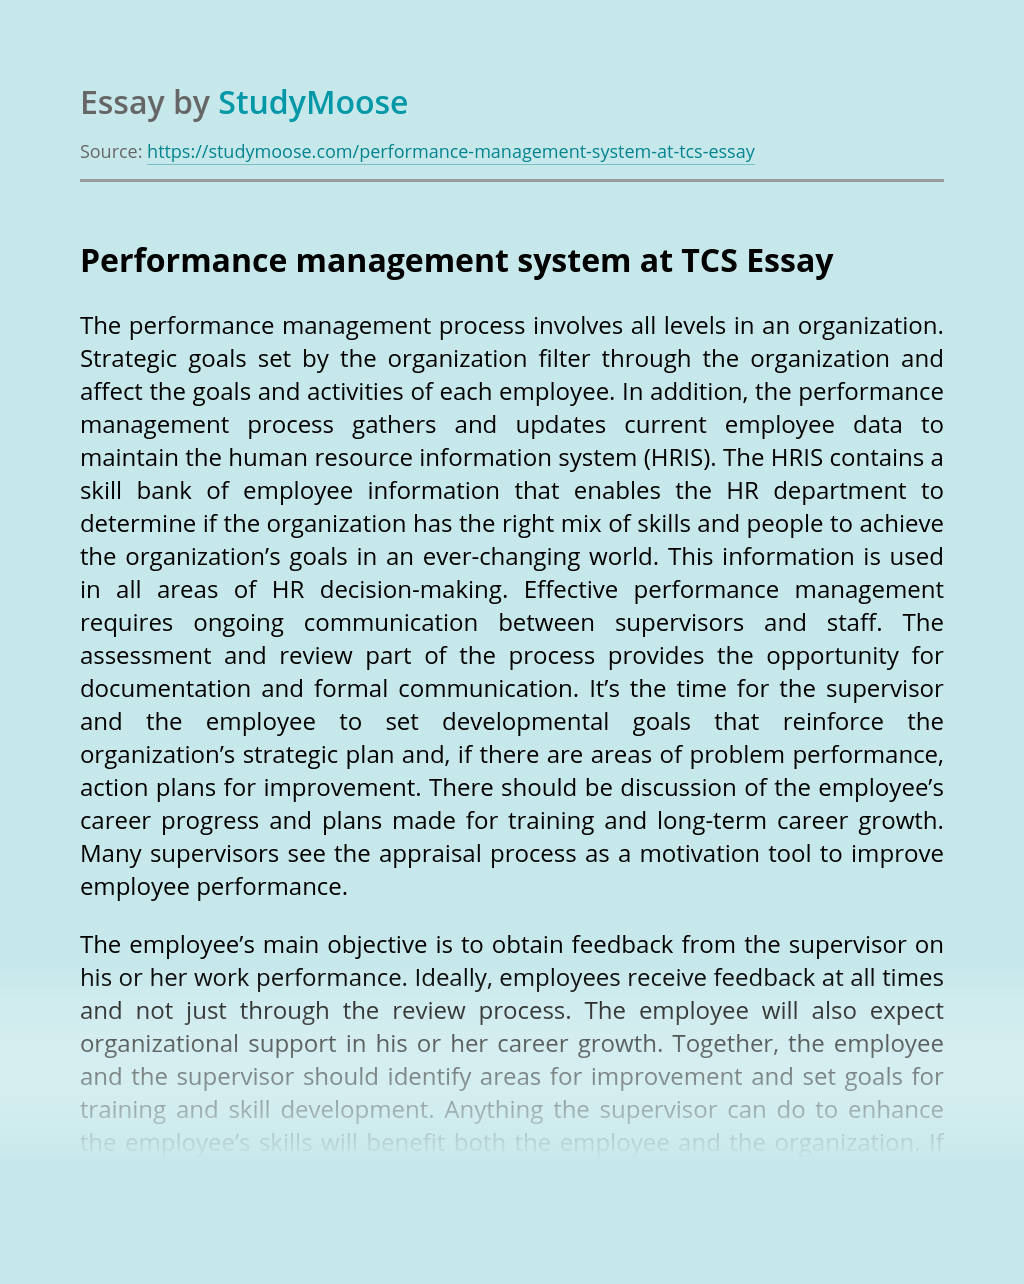 Performance management system at TCS